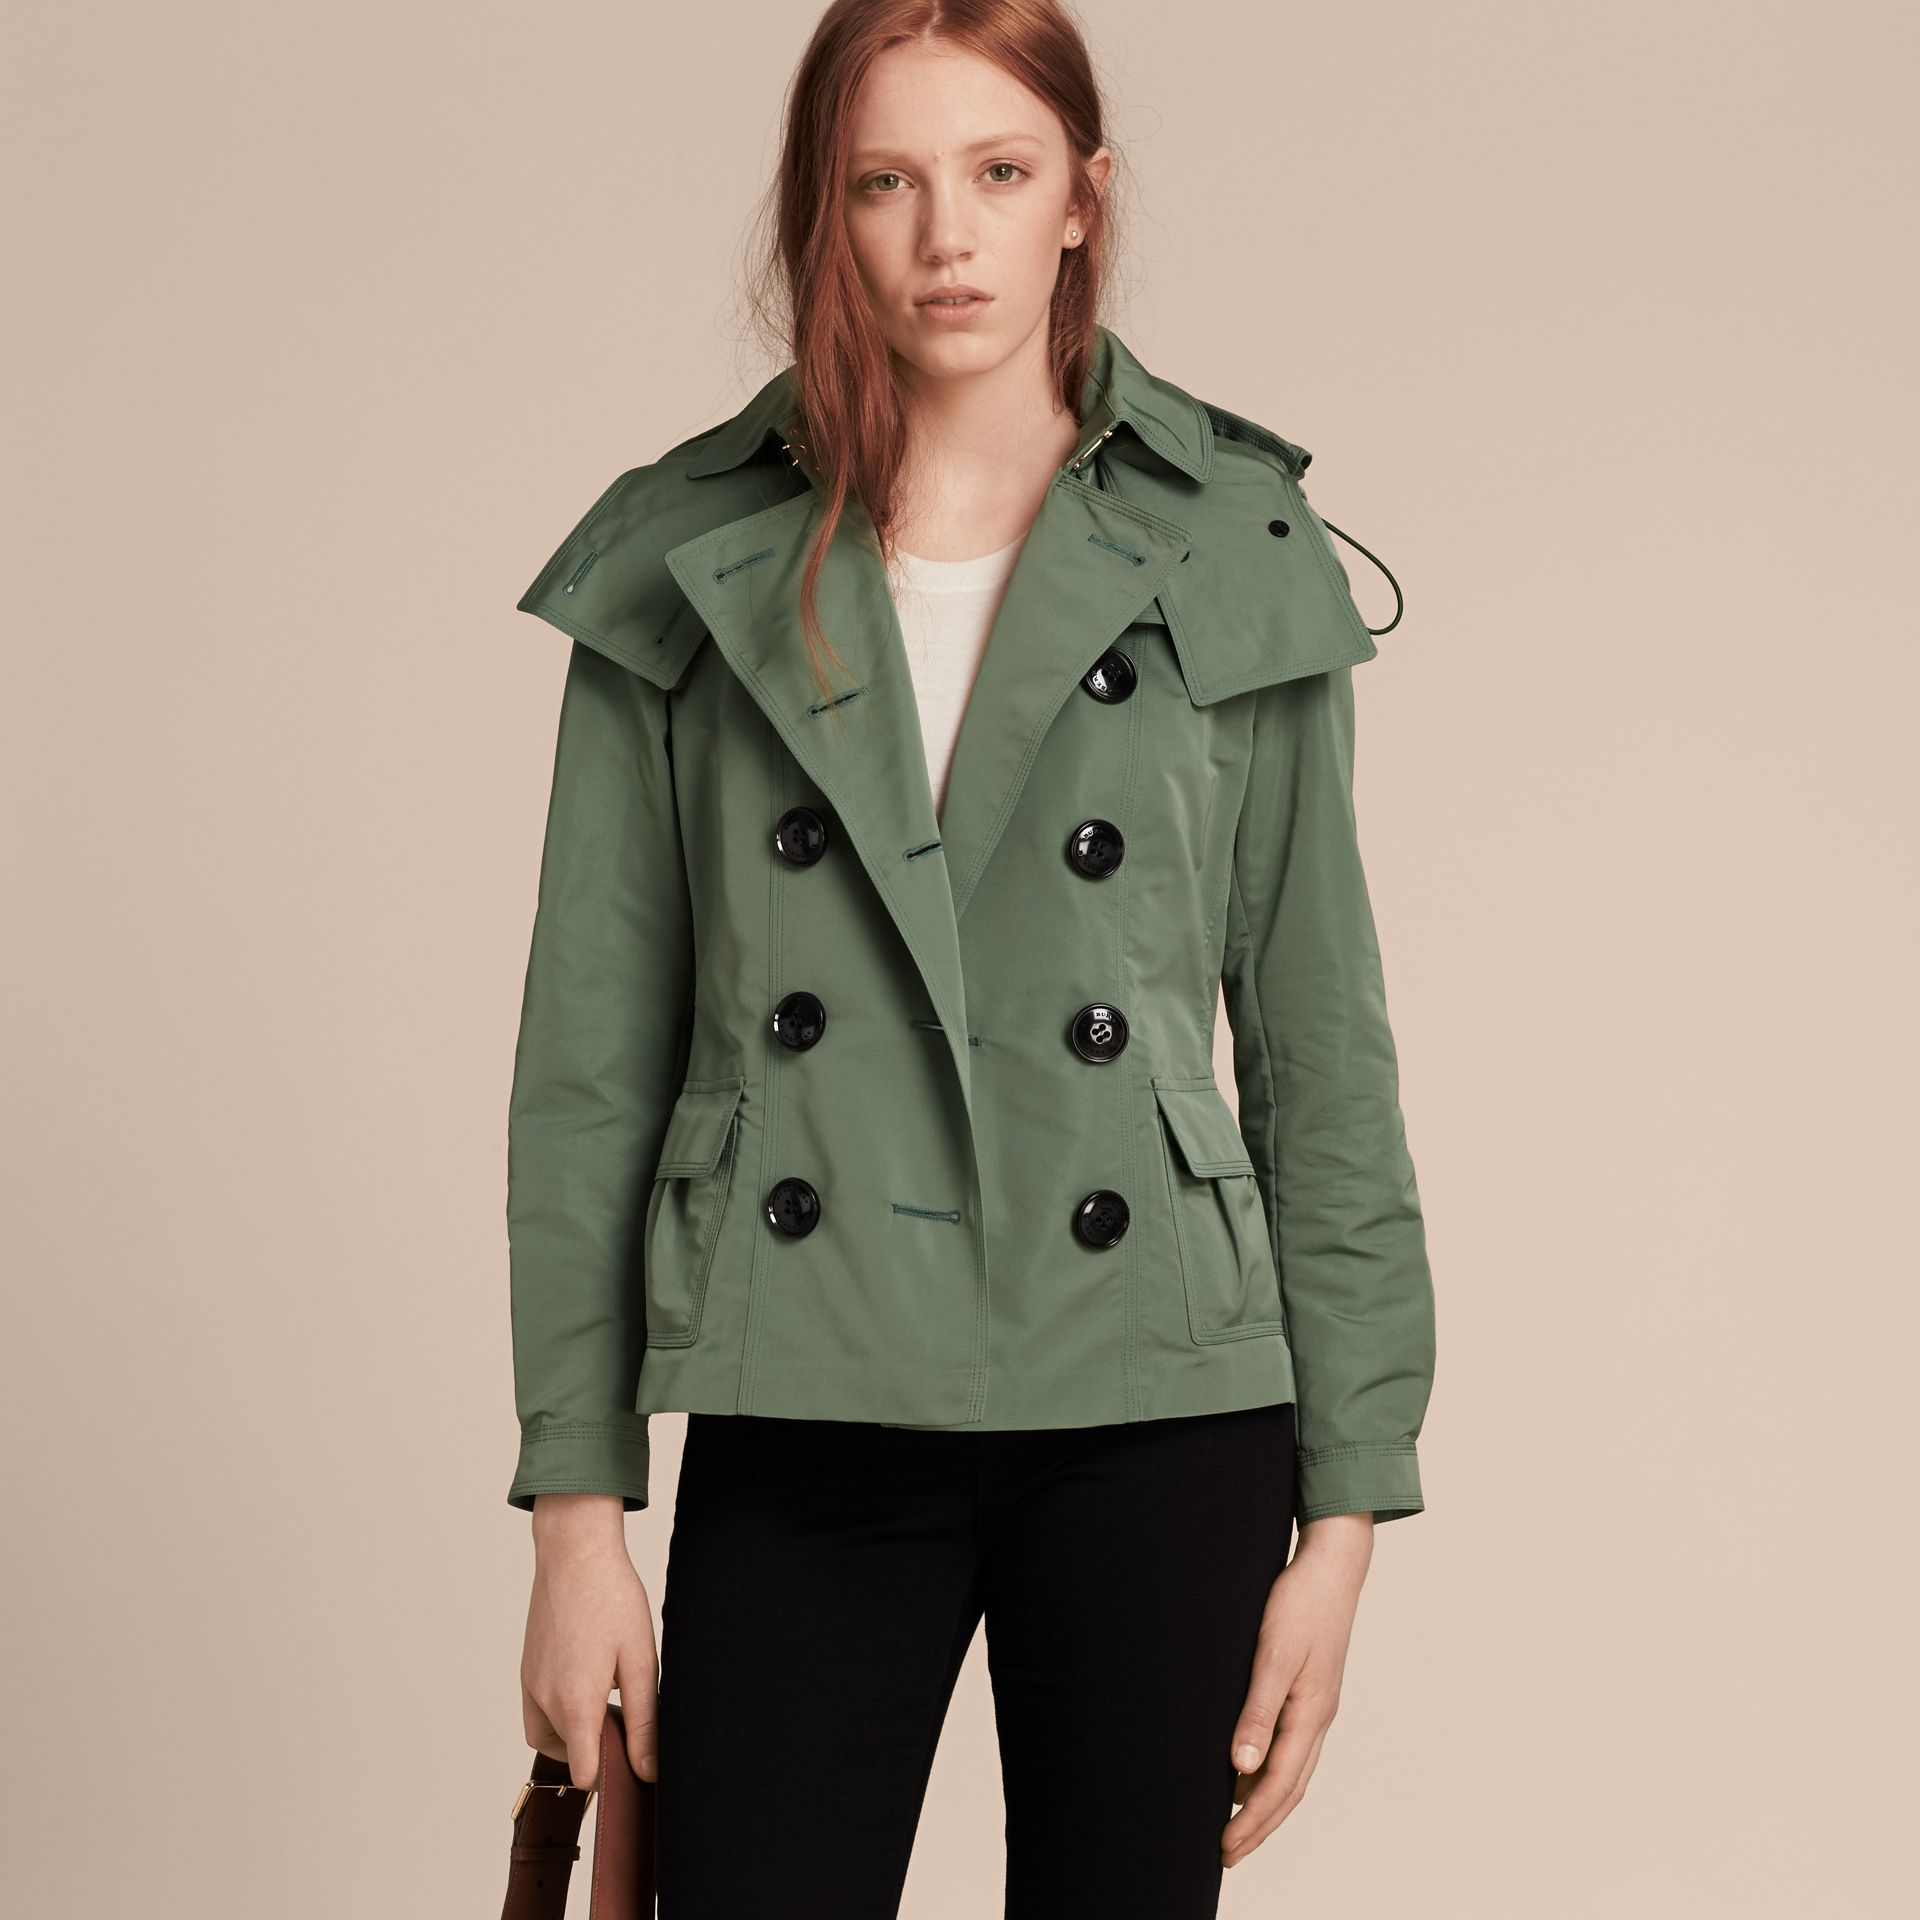 Eucalyptus green Showerproof Taffeta Trench Jacket with Detachable Hood Eucalyptus Green - gallery image 7